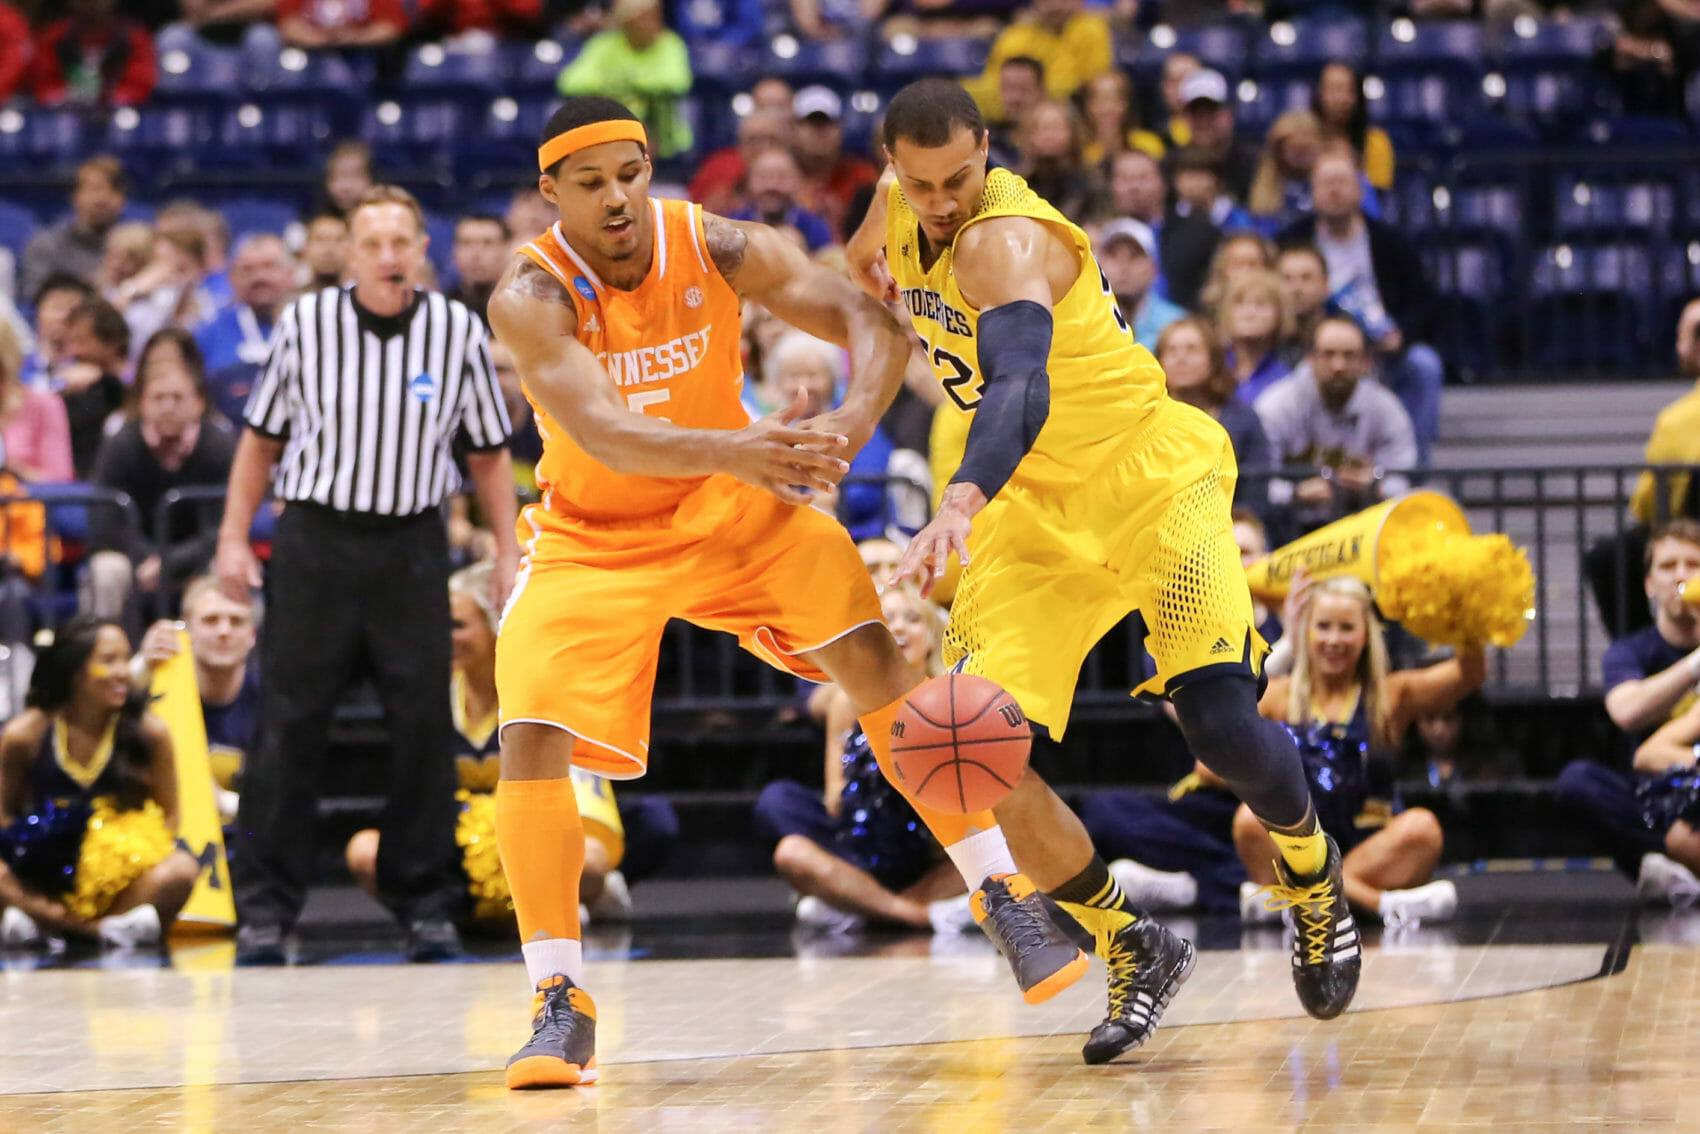 Michigan 73, Tennessee 71-15